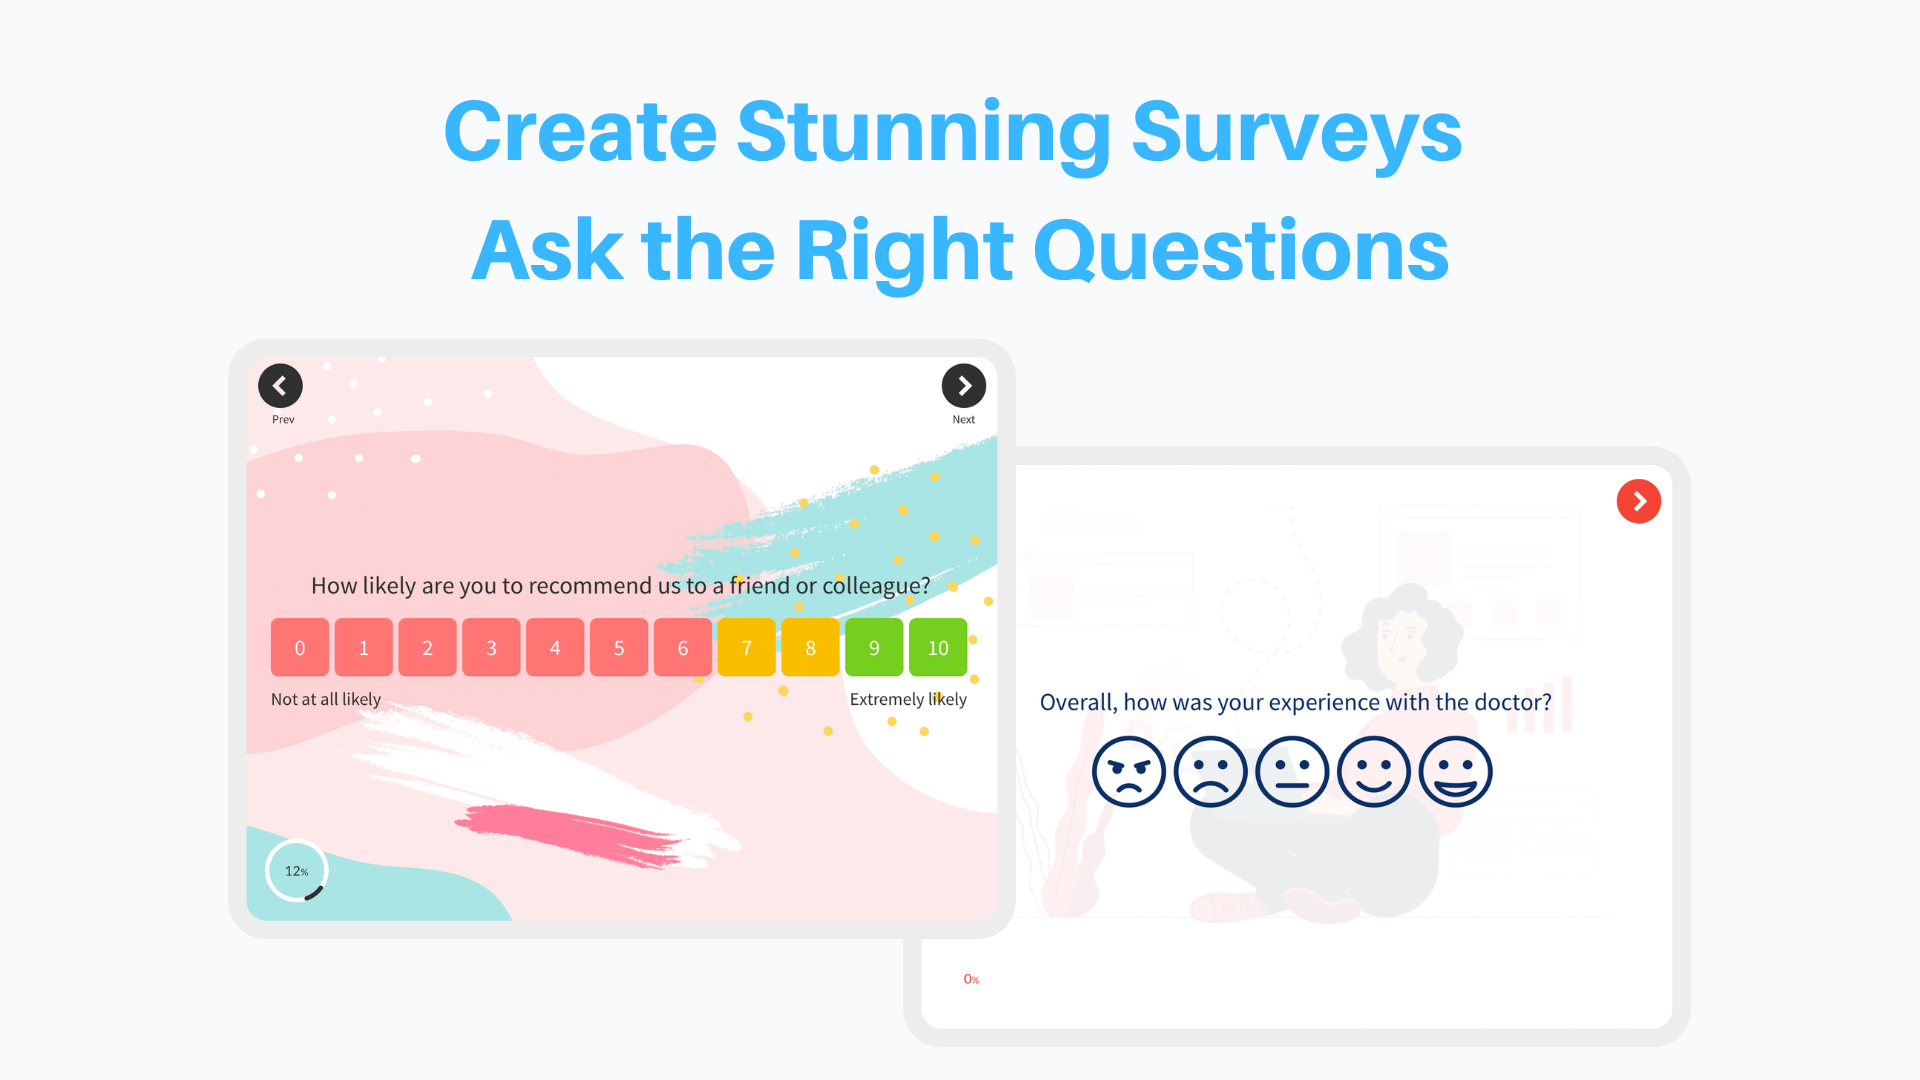 Create Stunning Surveys, Ask the Right Questions